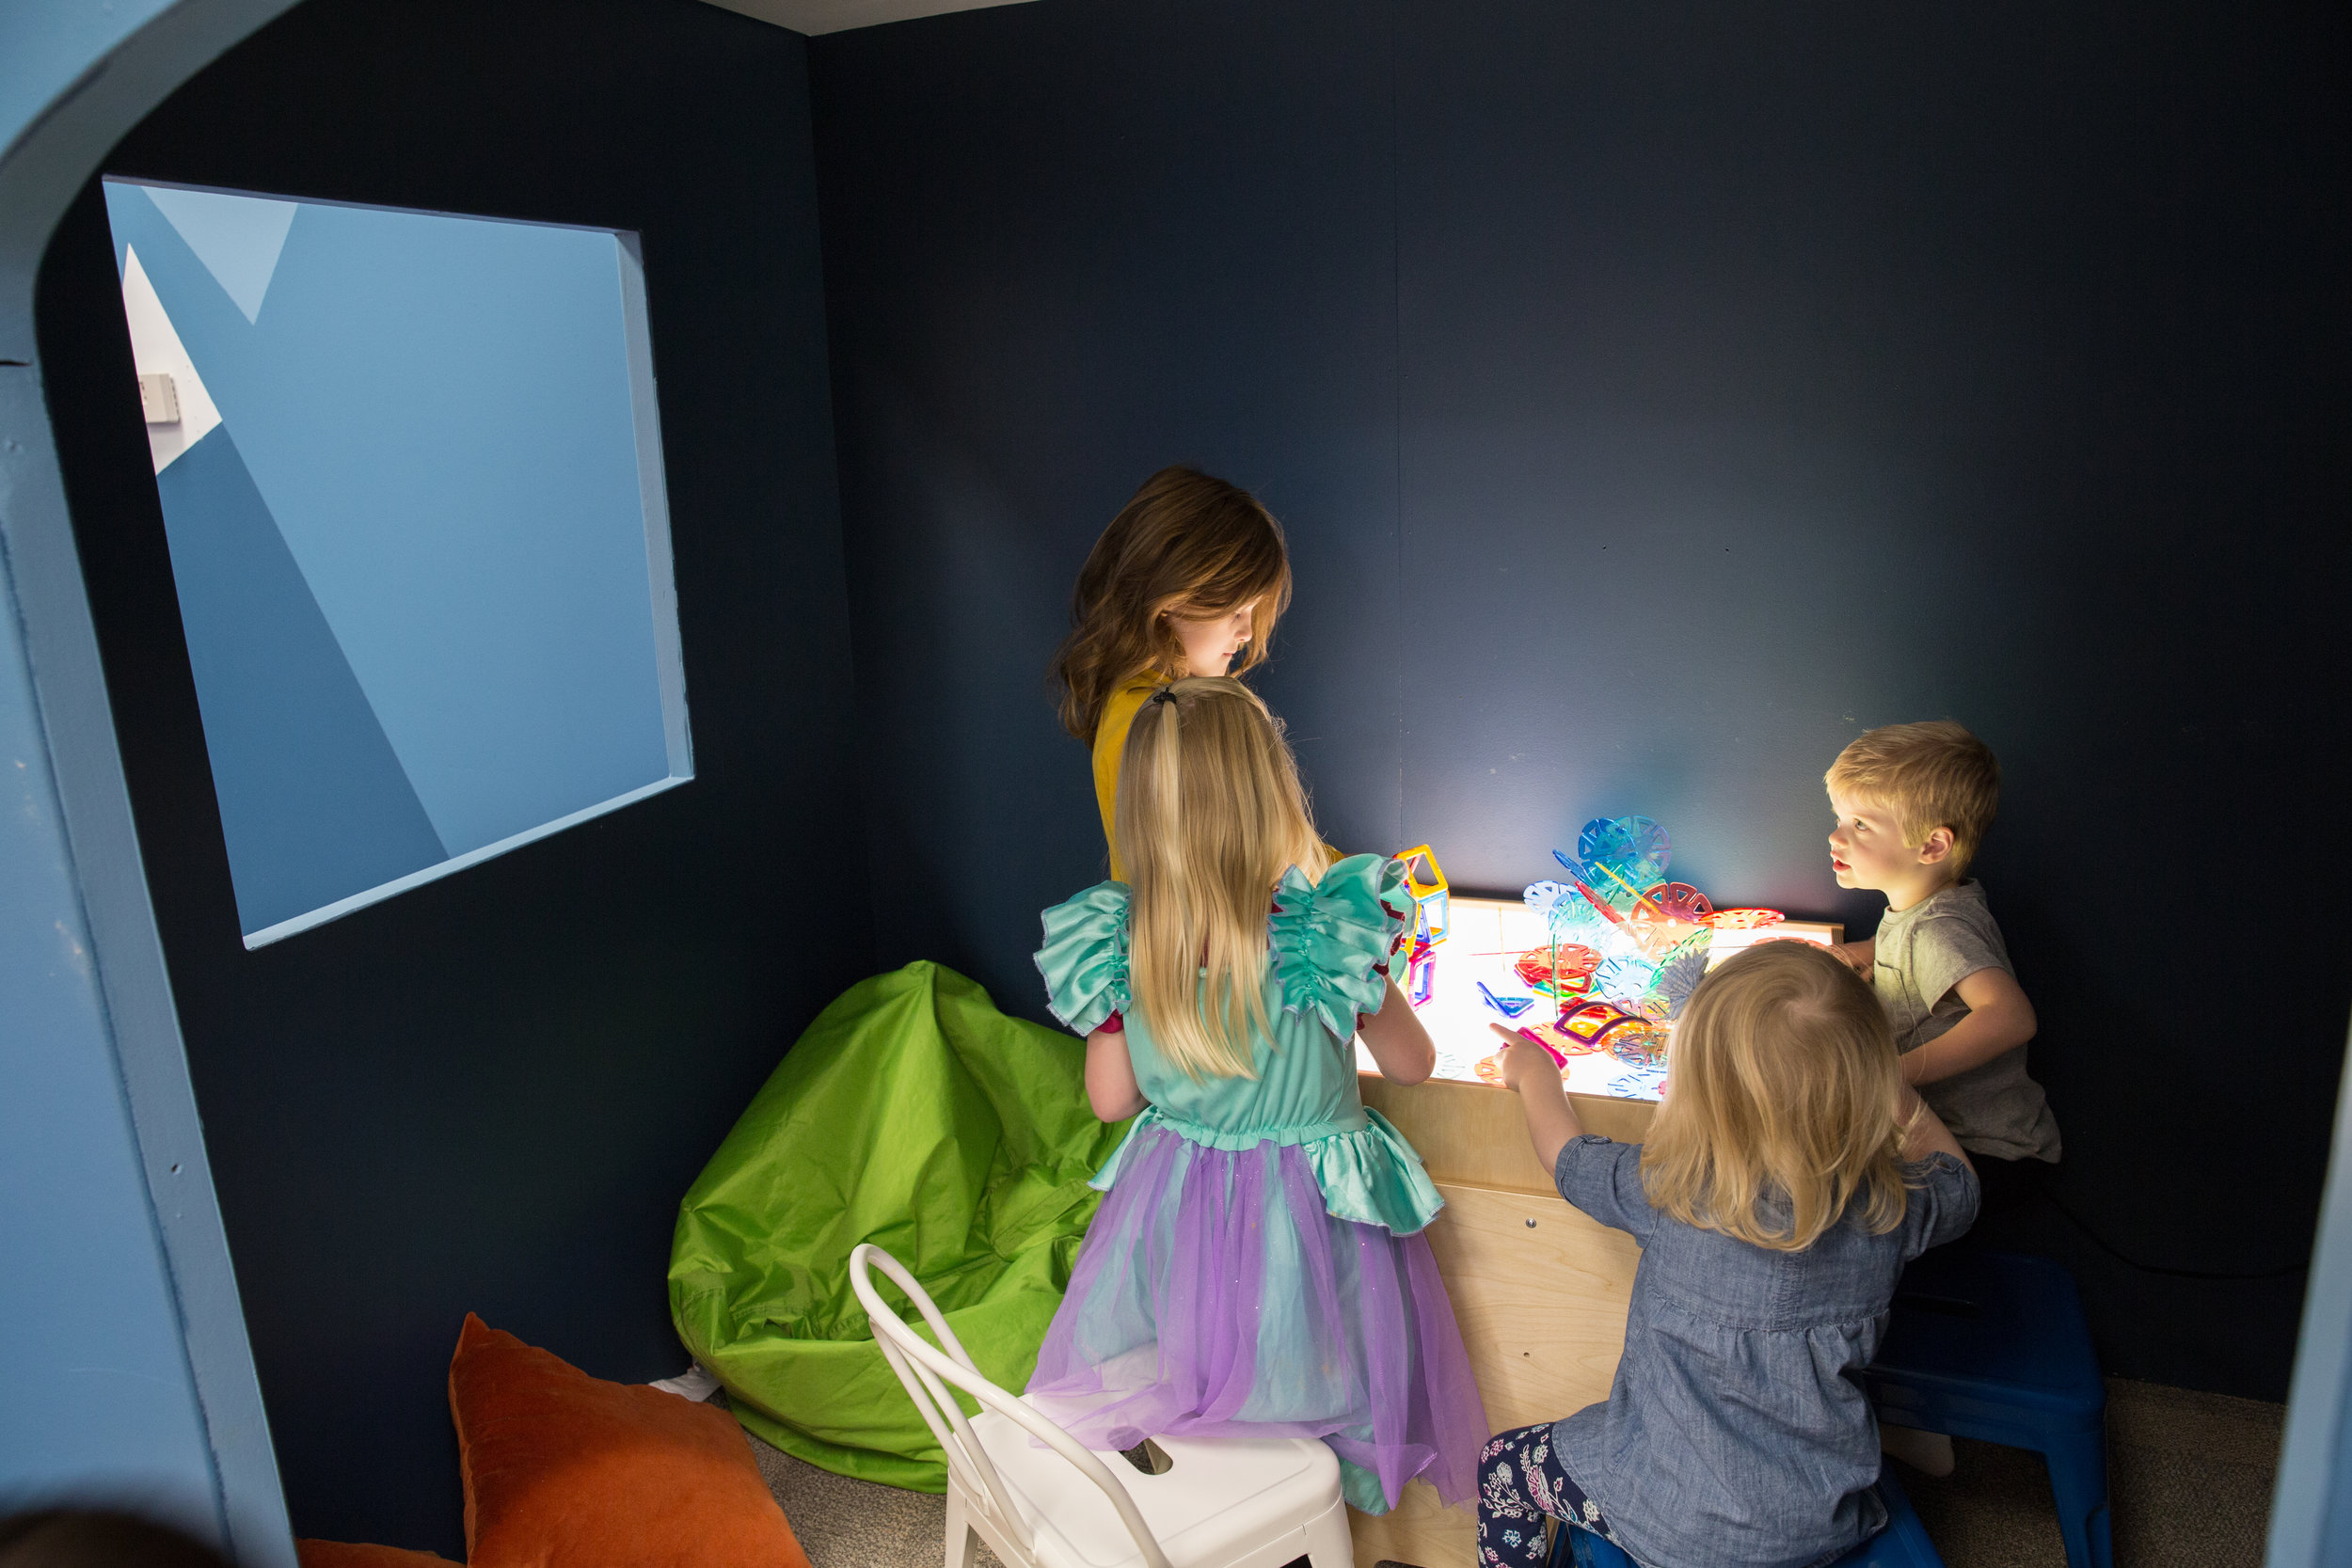 Dark room - We've built a calming dark cave for when the kids are overstimulated or want to play on the light table